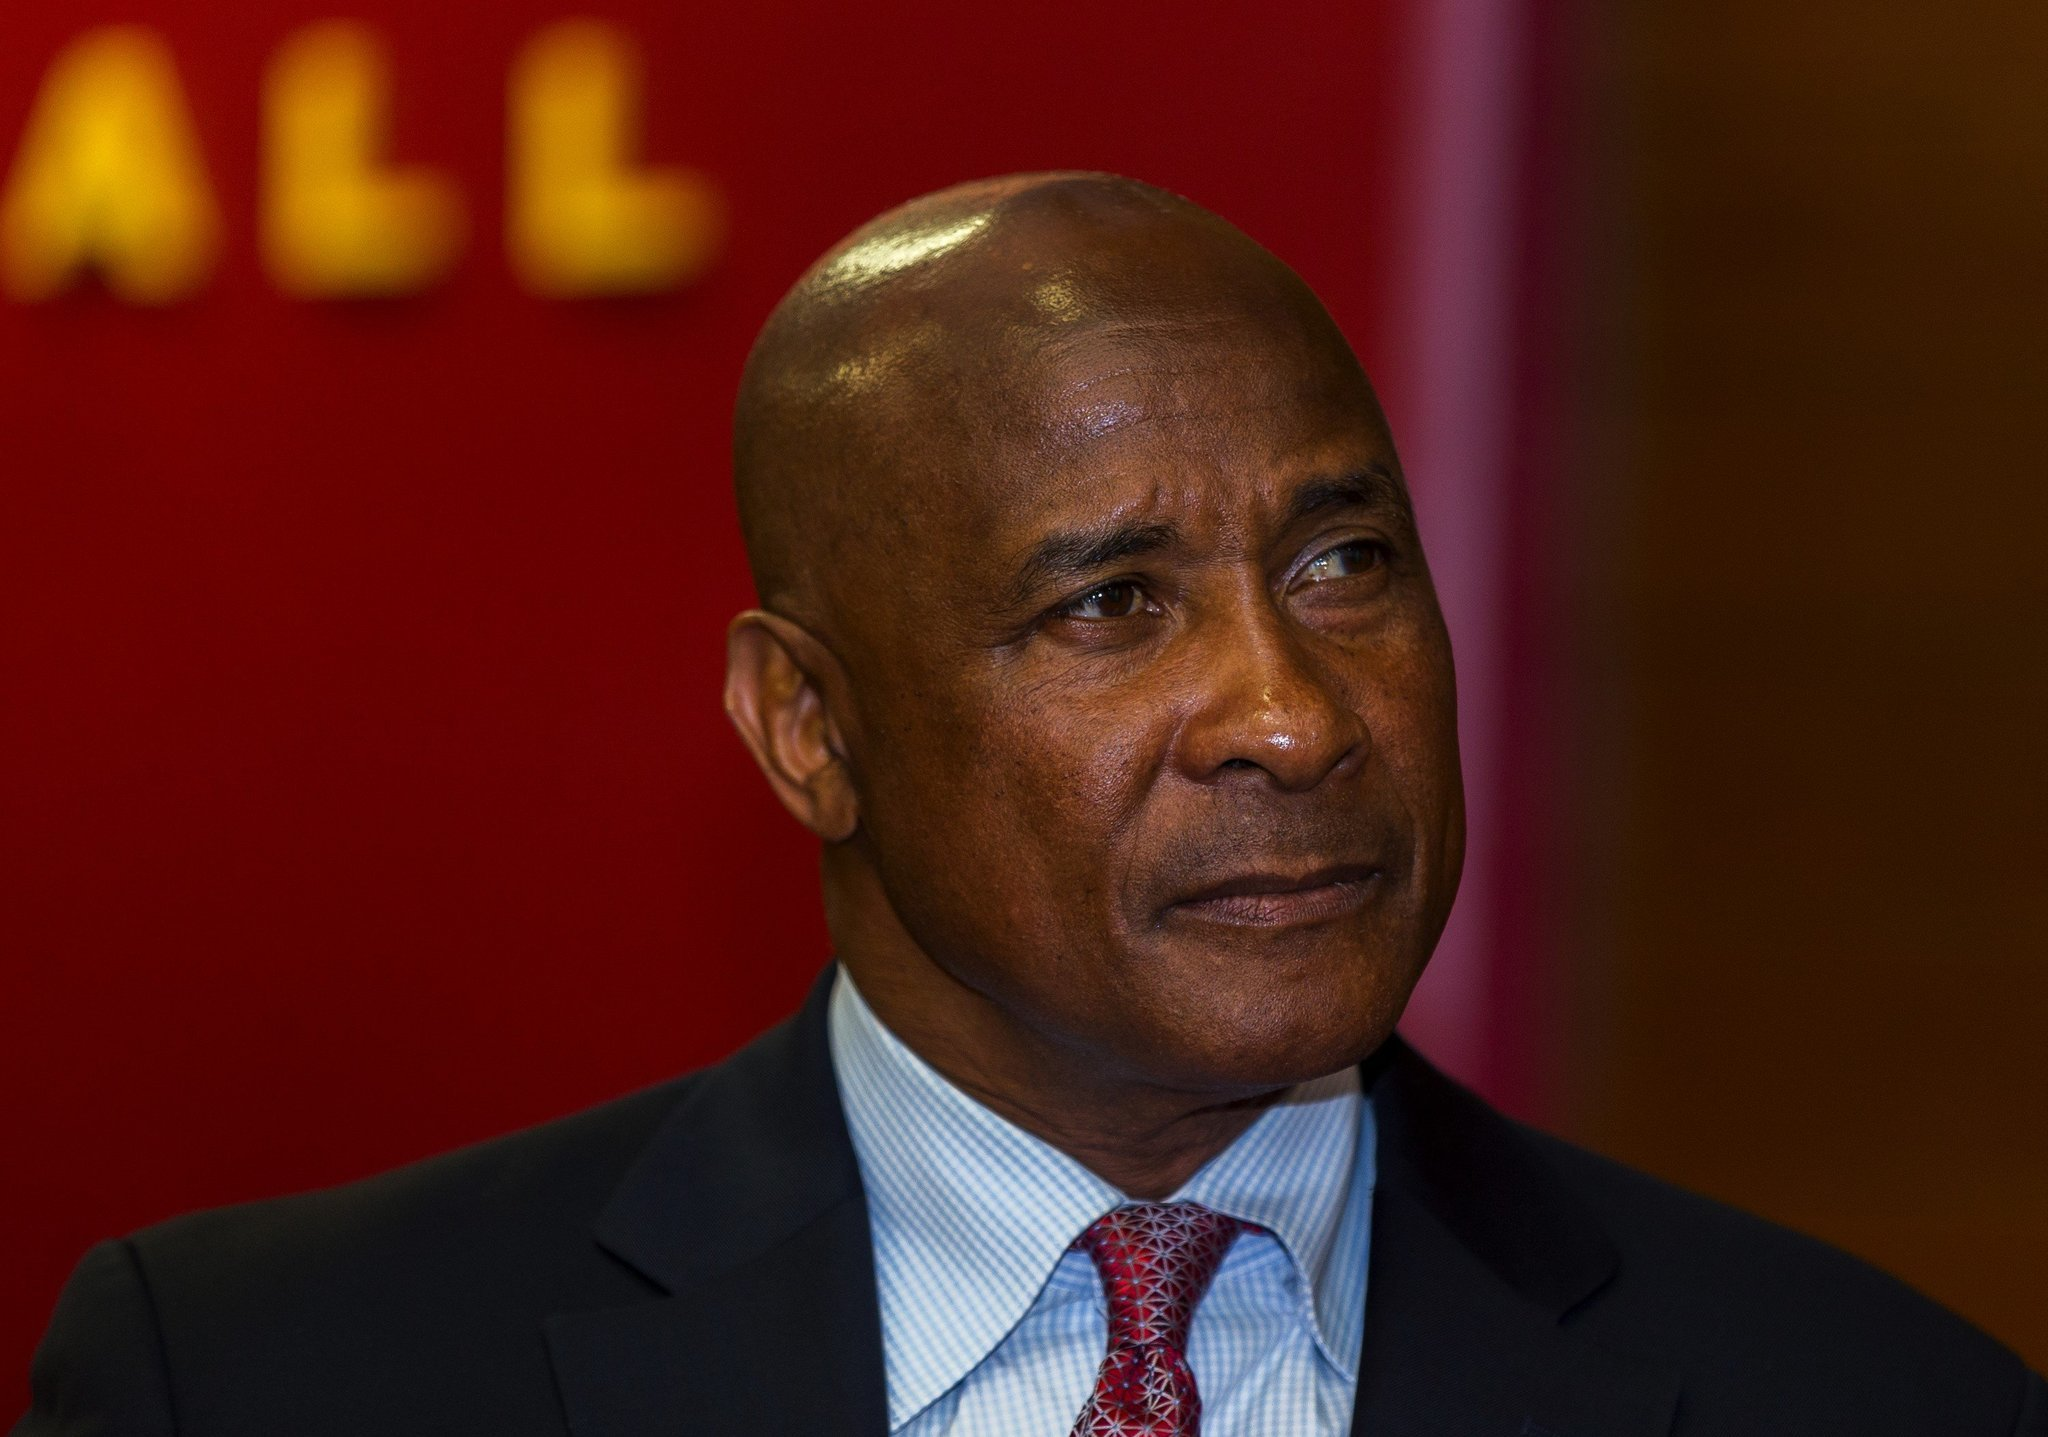 Lynn Swann says he'll stay at USC for long haul? Those are long odds